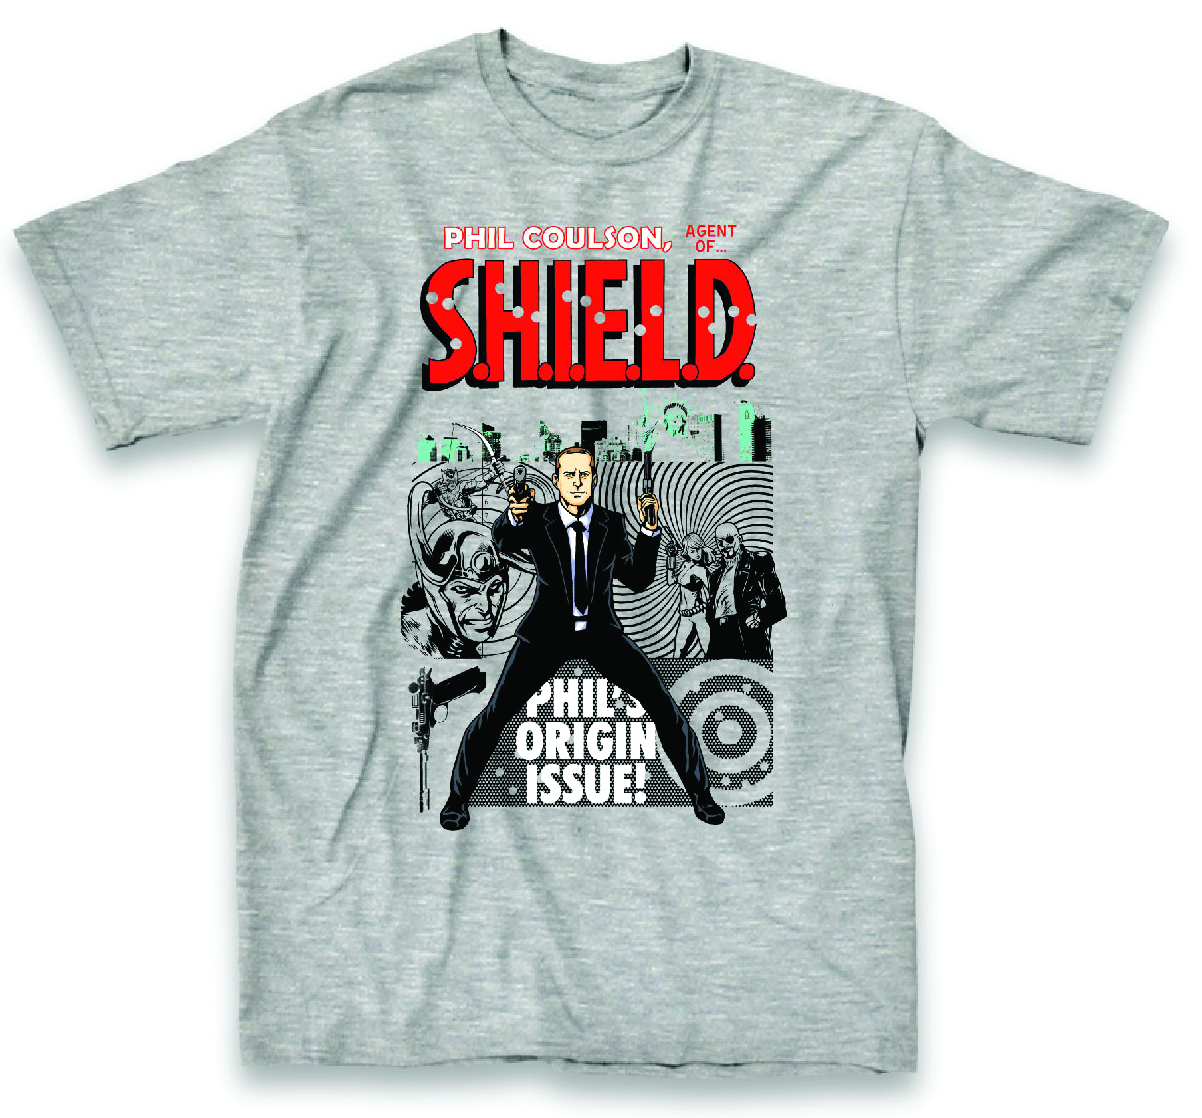 SHIELD AGENT PHIL COULSON HEATHER T/S SM